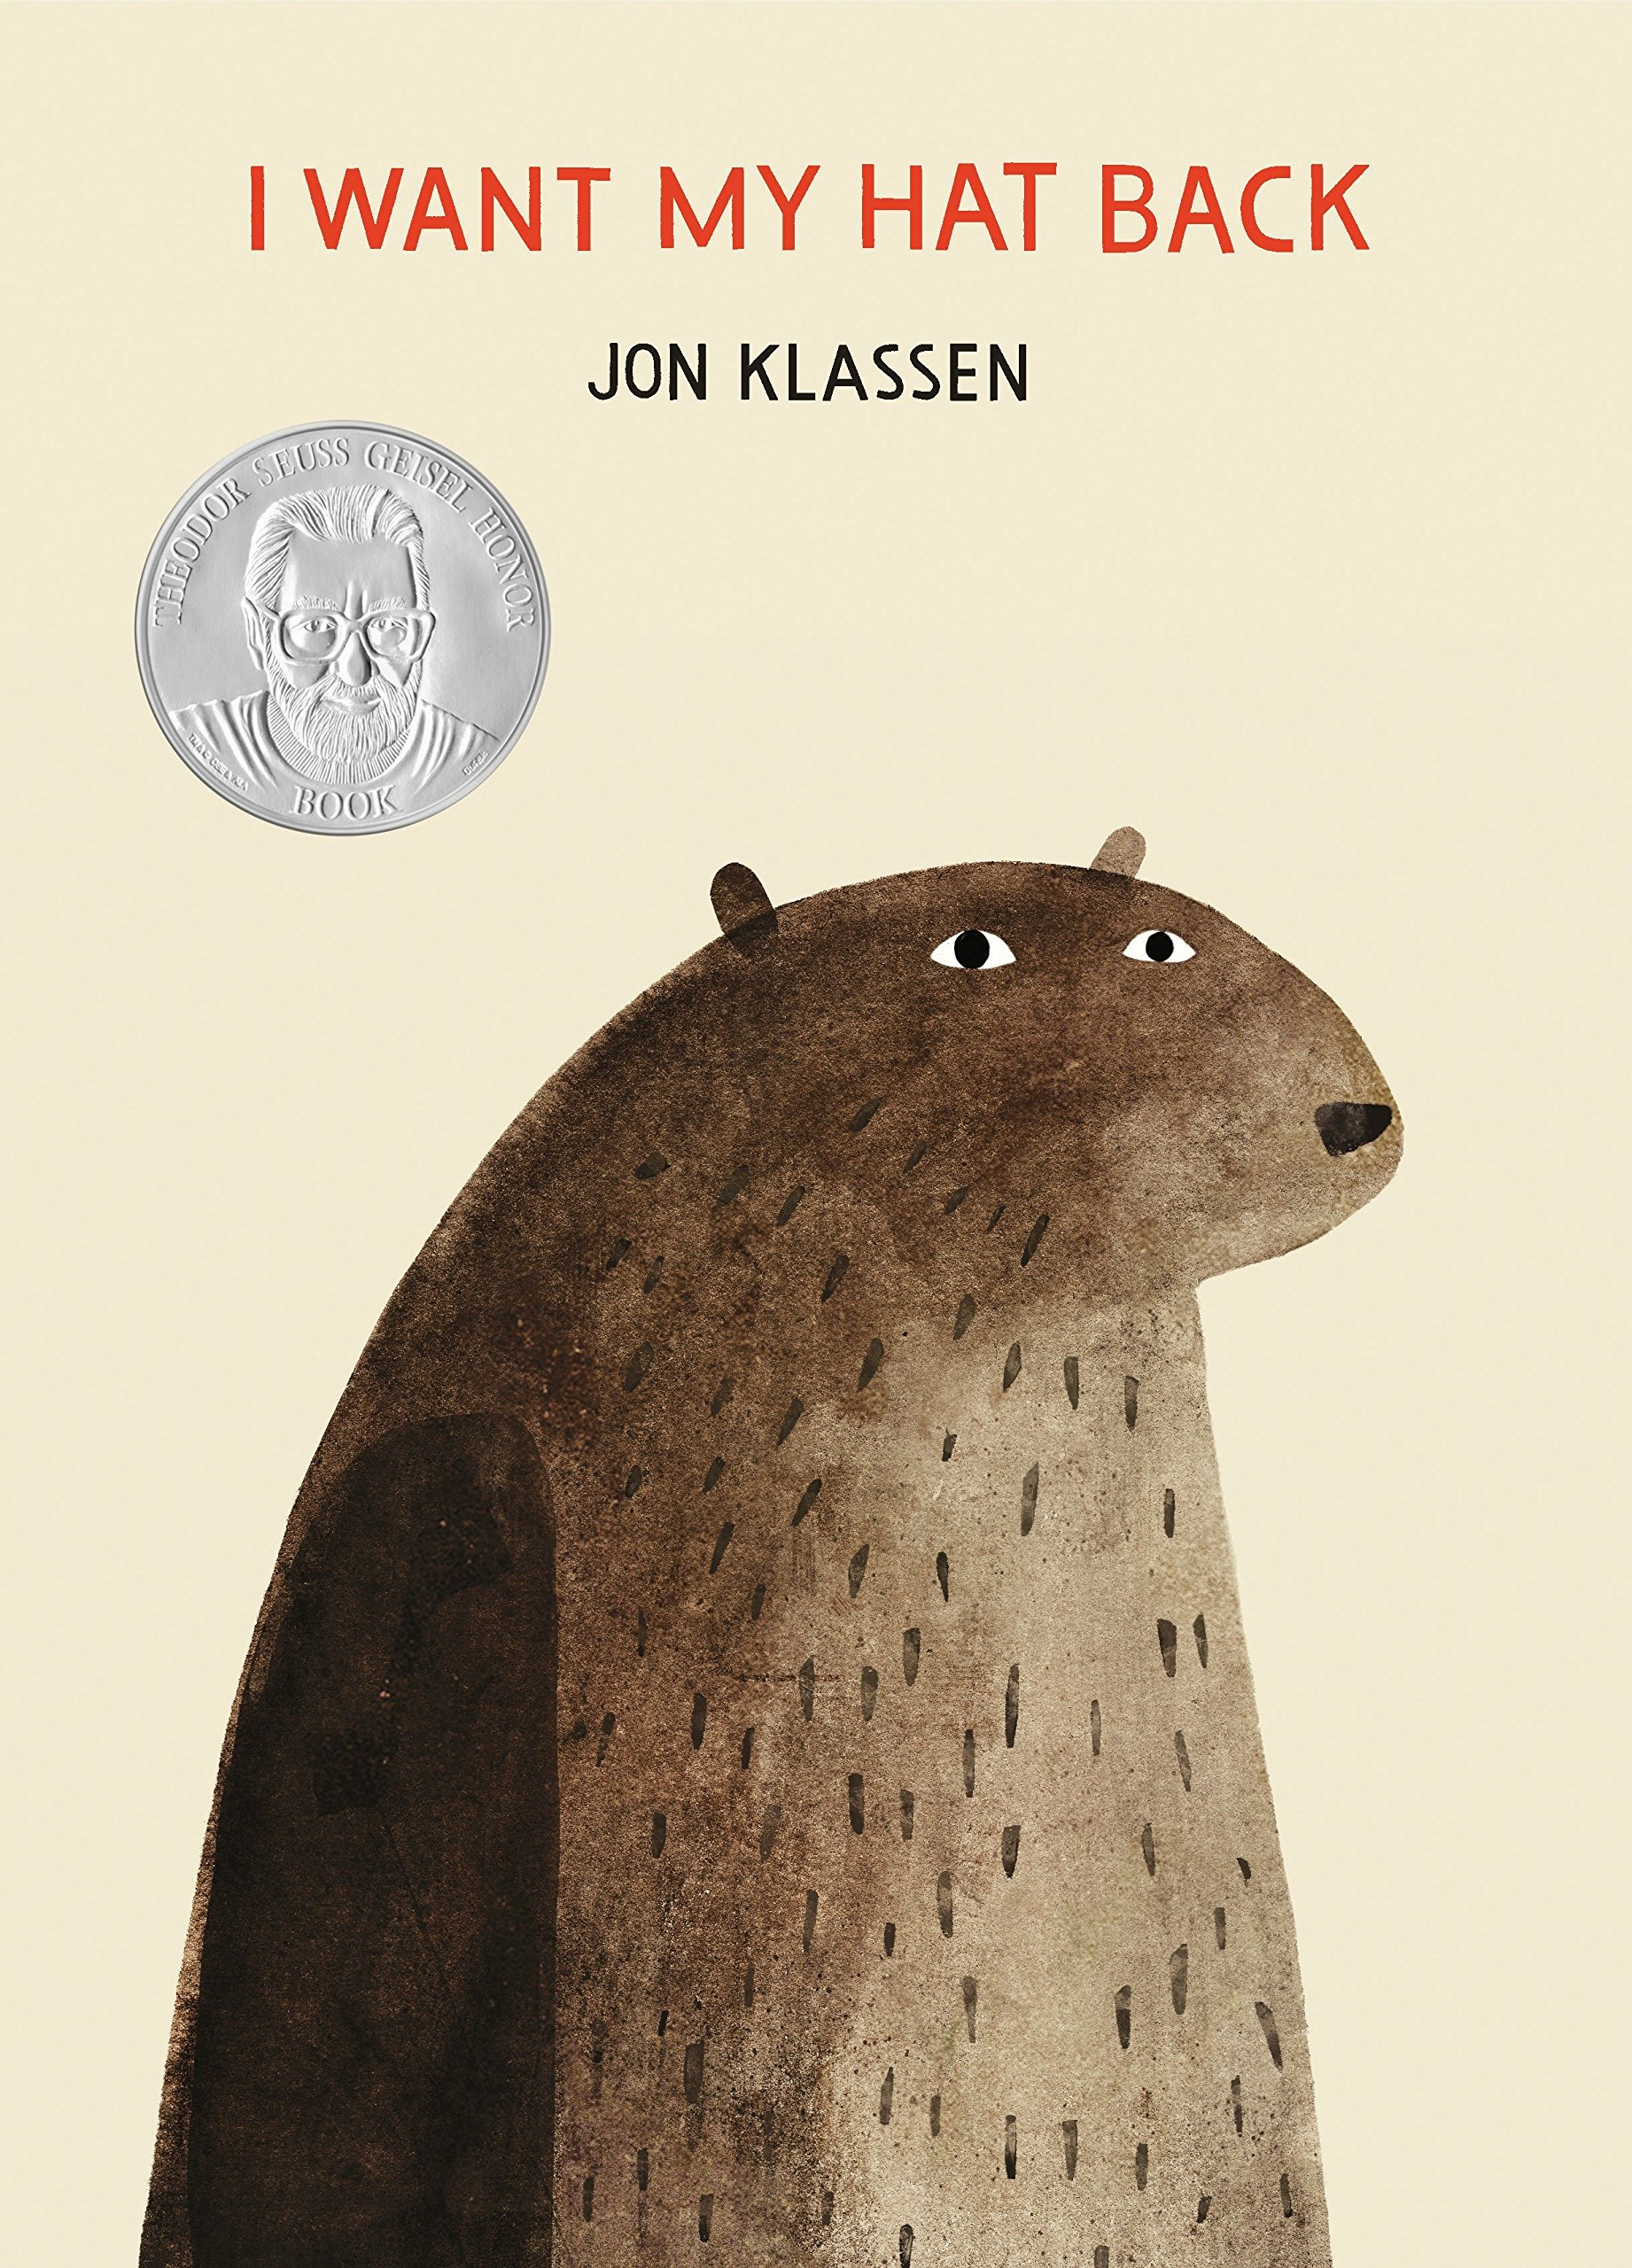 The Best Picture Books of All Time - I Want My Hat Back.jpg